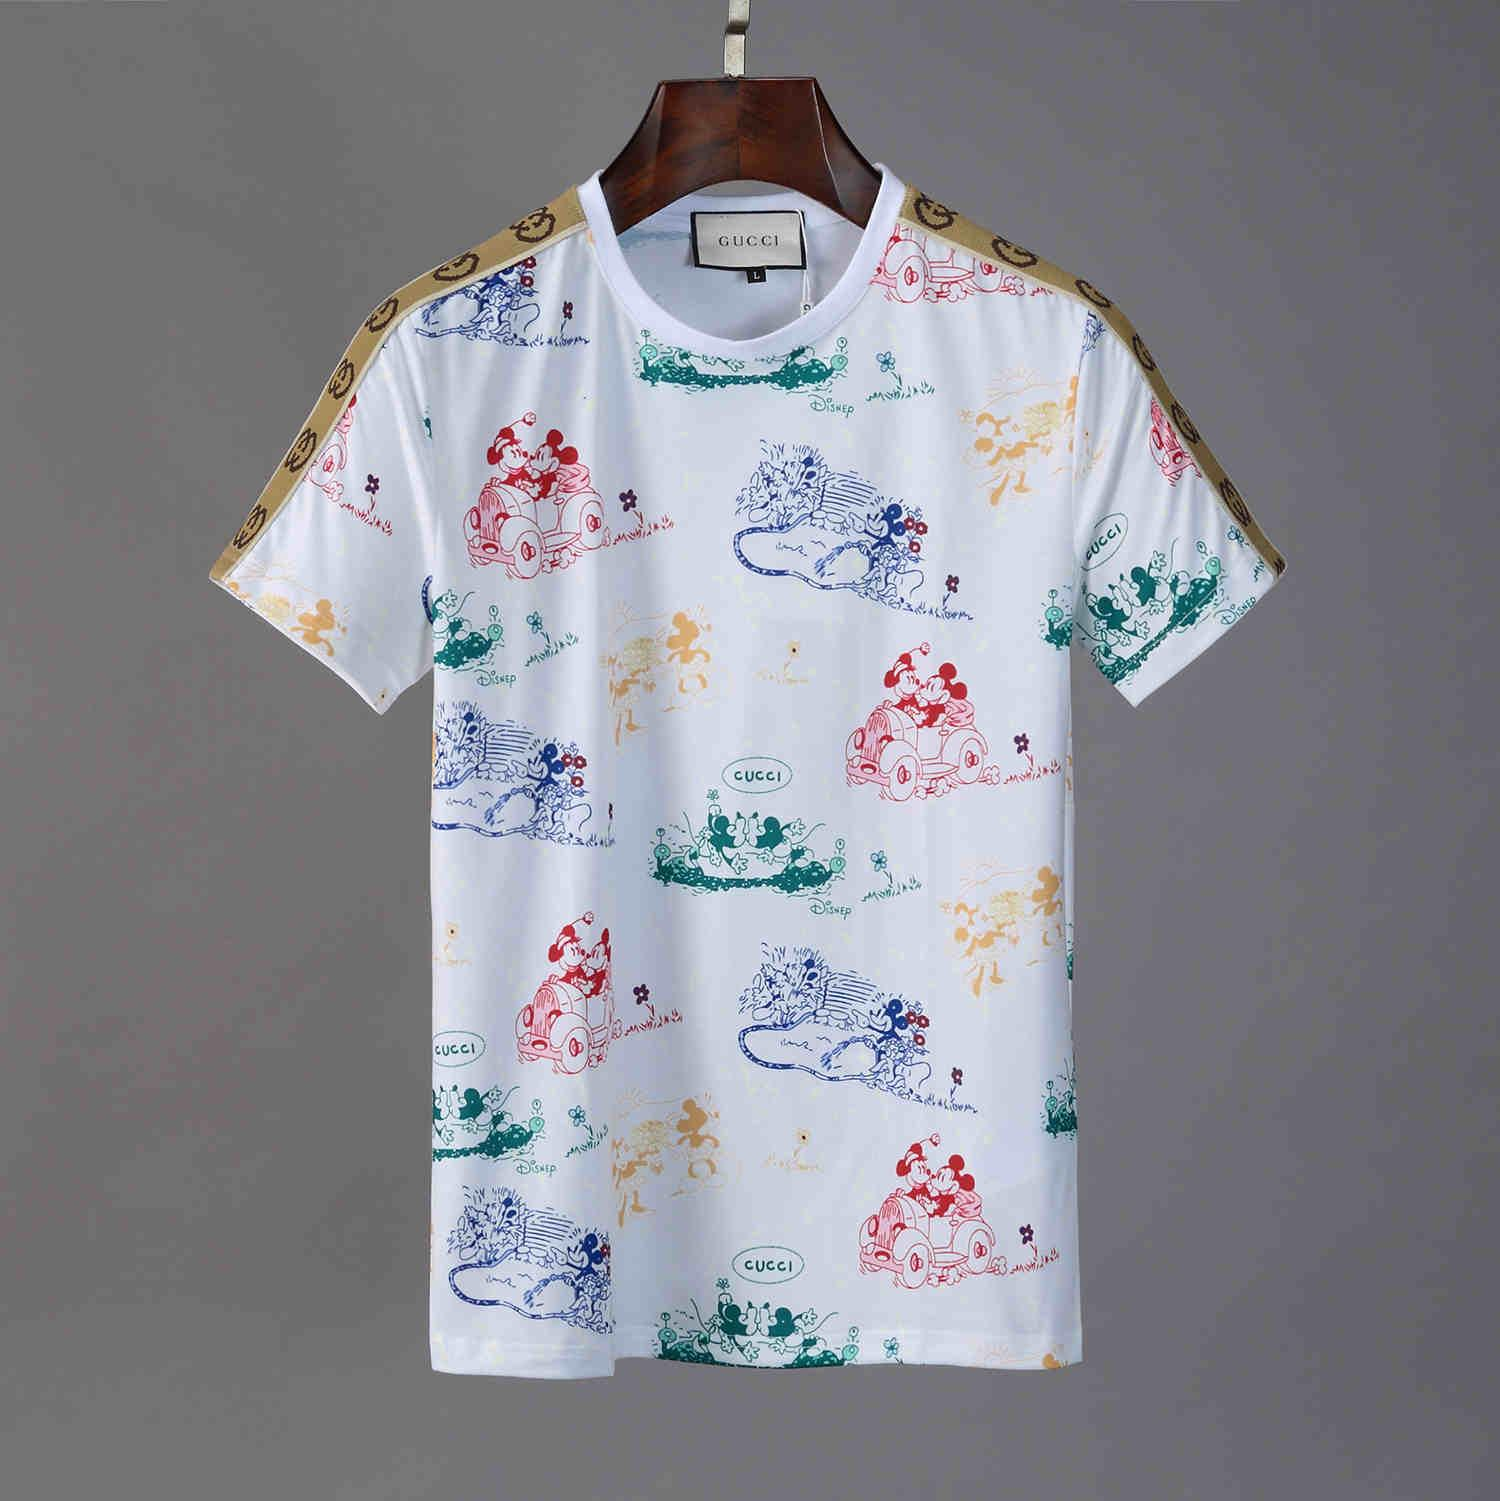 2020 Mens Summer New Fashion Sports T Shirt O Neck Short Sleeve Mens Design Embroidered Cotton T Shirt Men J8 T Shirt S Tees Shirts From Dd01 20 43 Dhgate Com